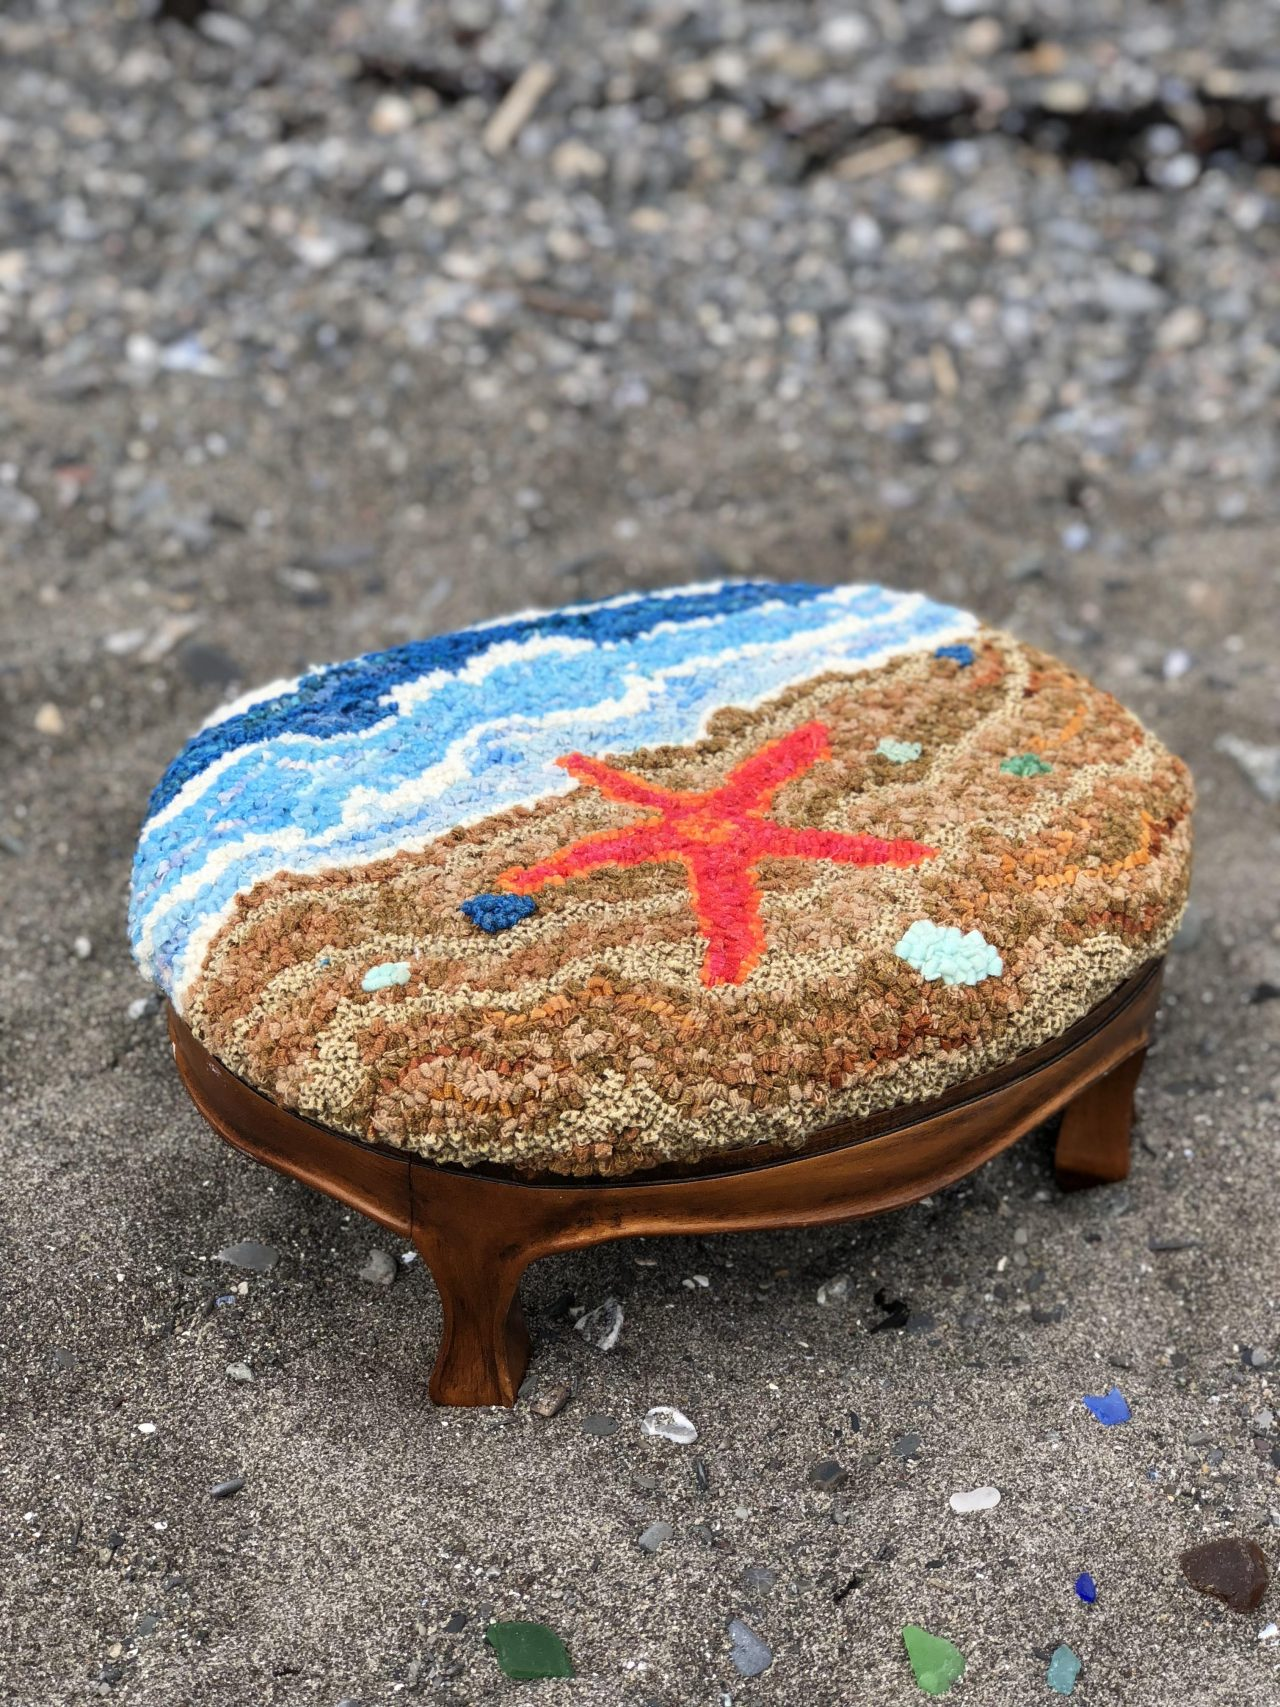 A wooden footstool with a hooked art image of a beach and red starfish by Yvonne Iten-Scott